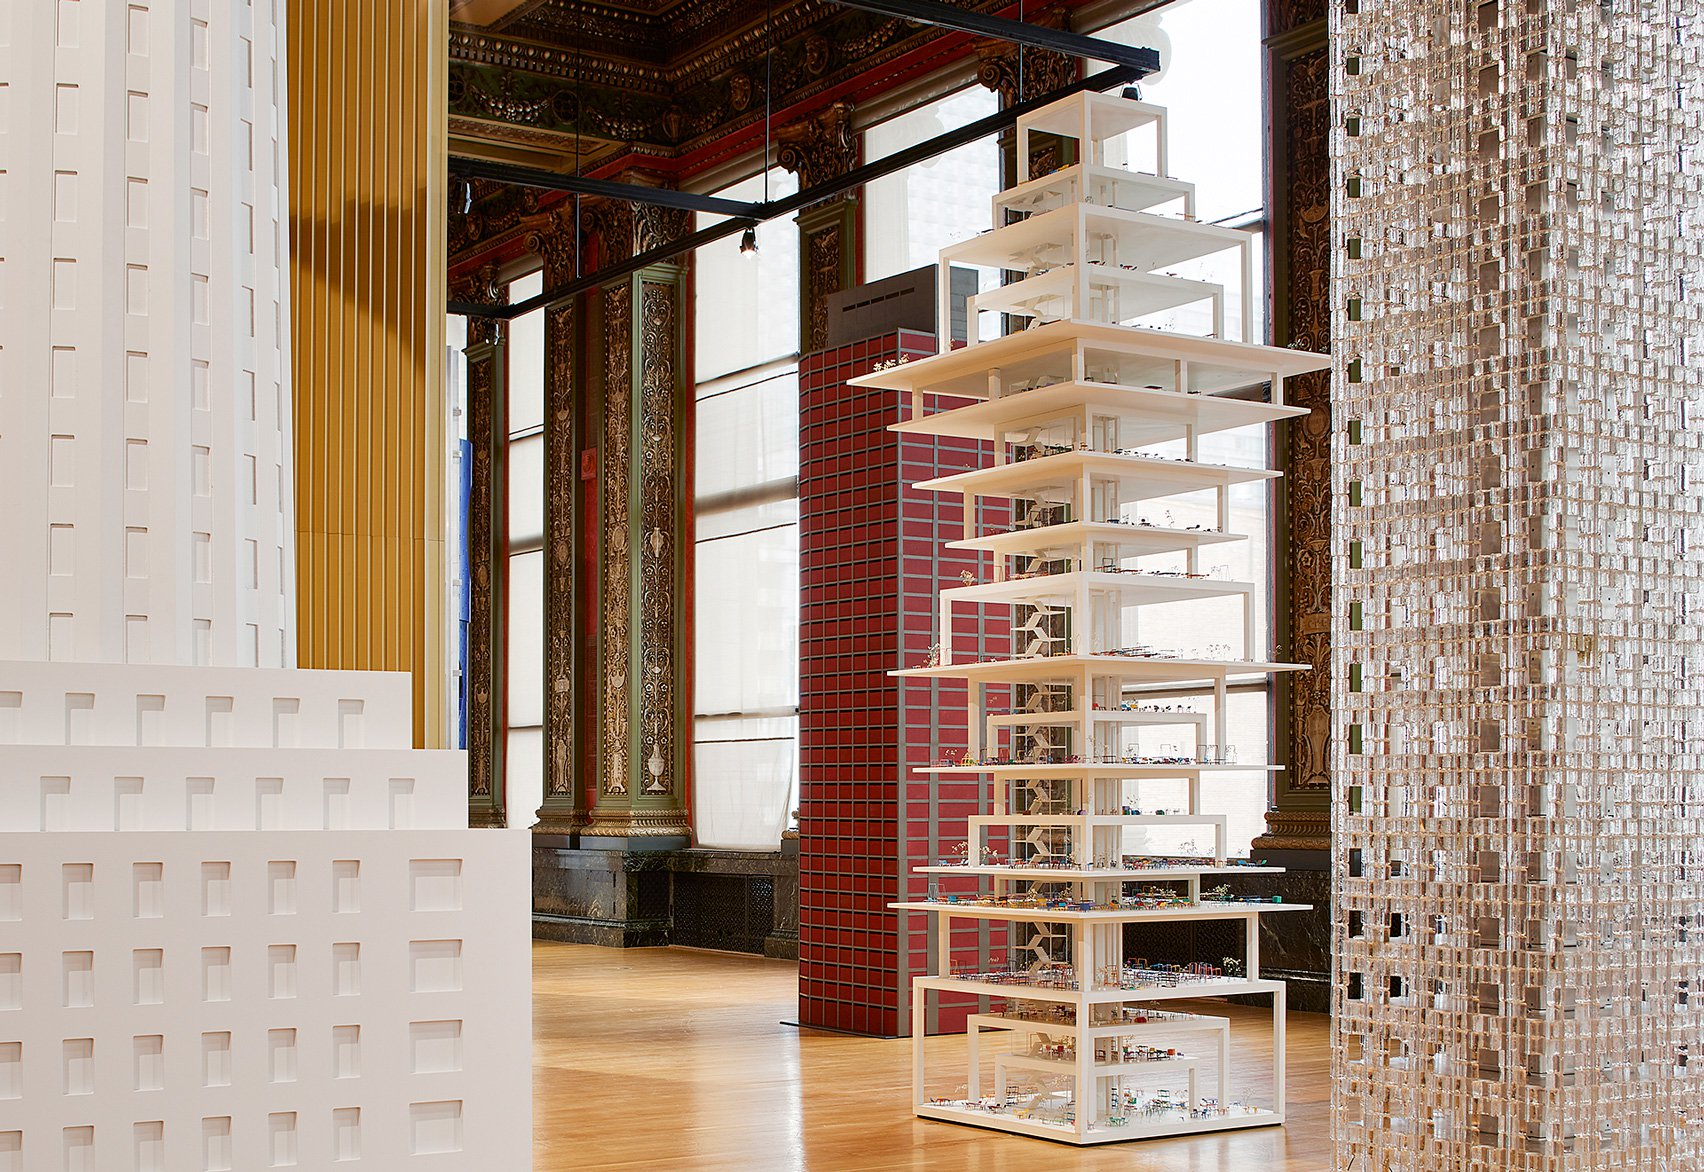 Architects reimagine Chicago's Tribune Tower with abstract skyscraper models